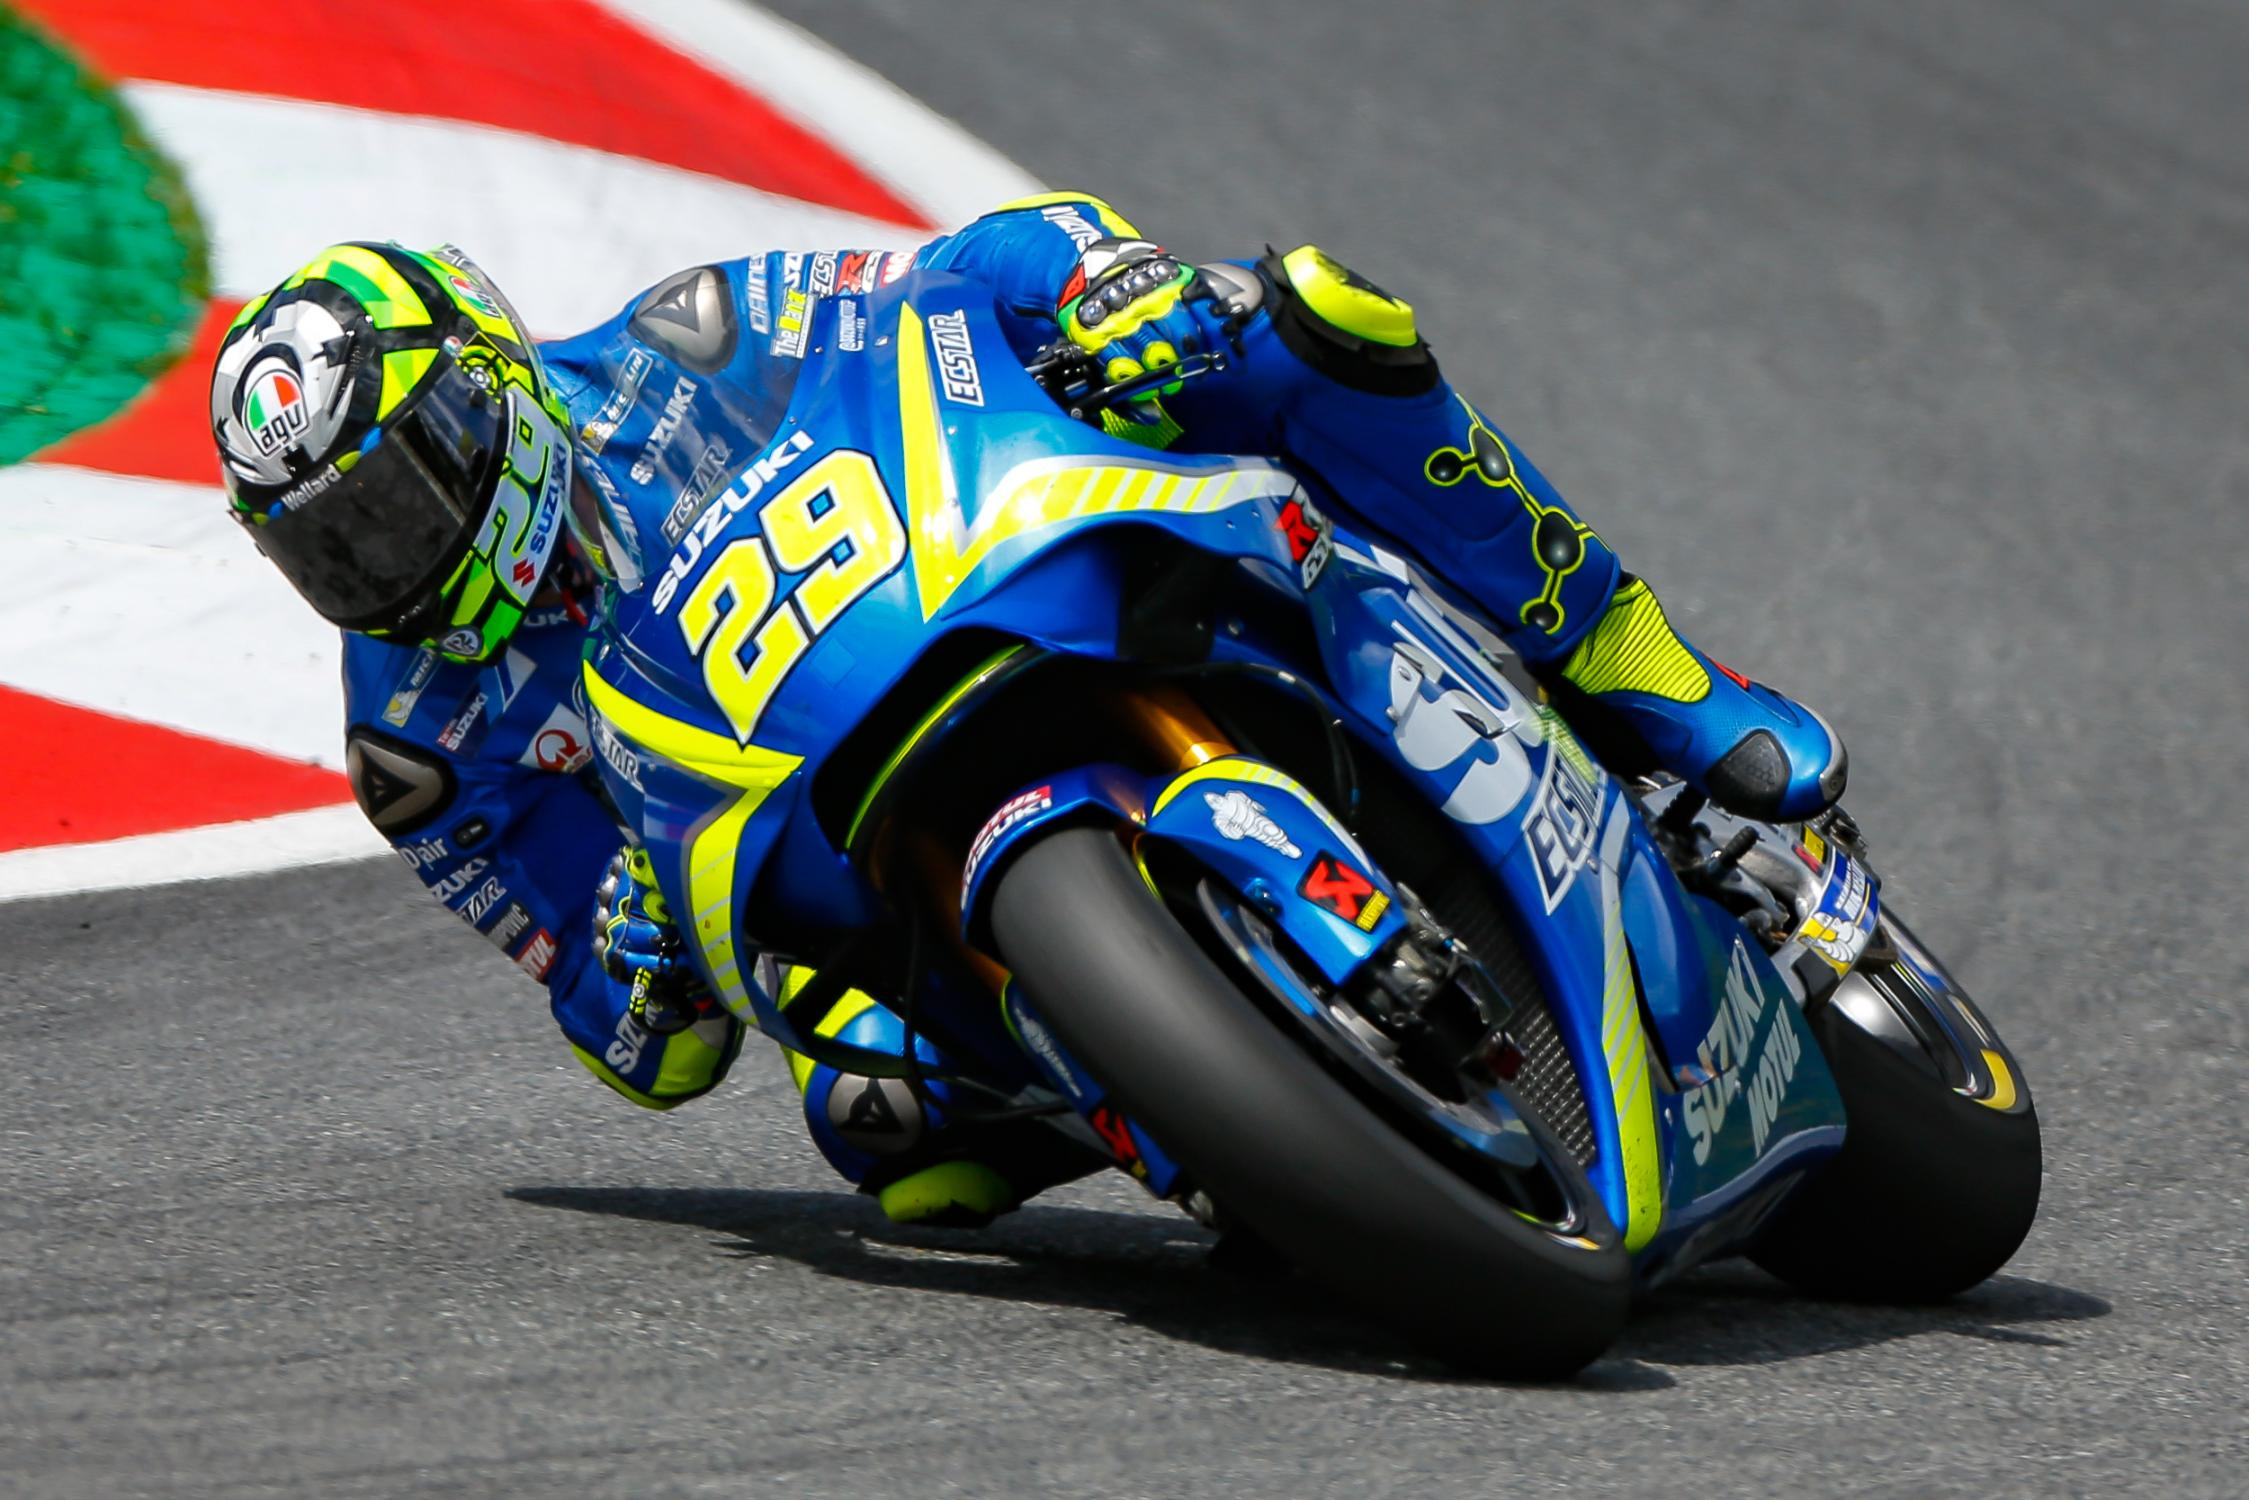 29-andrea-iannone-ita_gp_9533.gallery_full_top_fullscreen.jpg